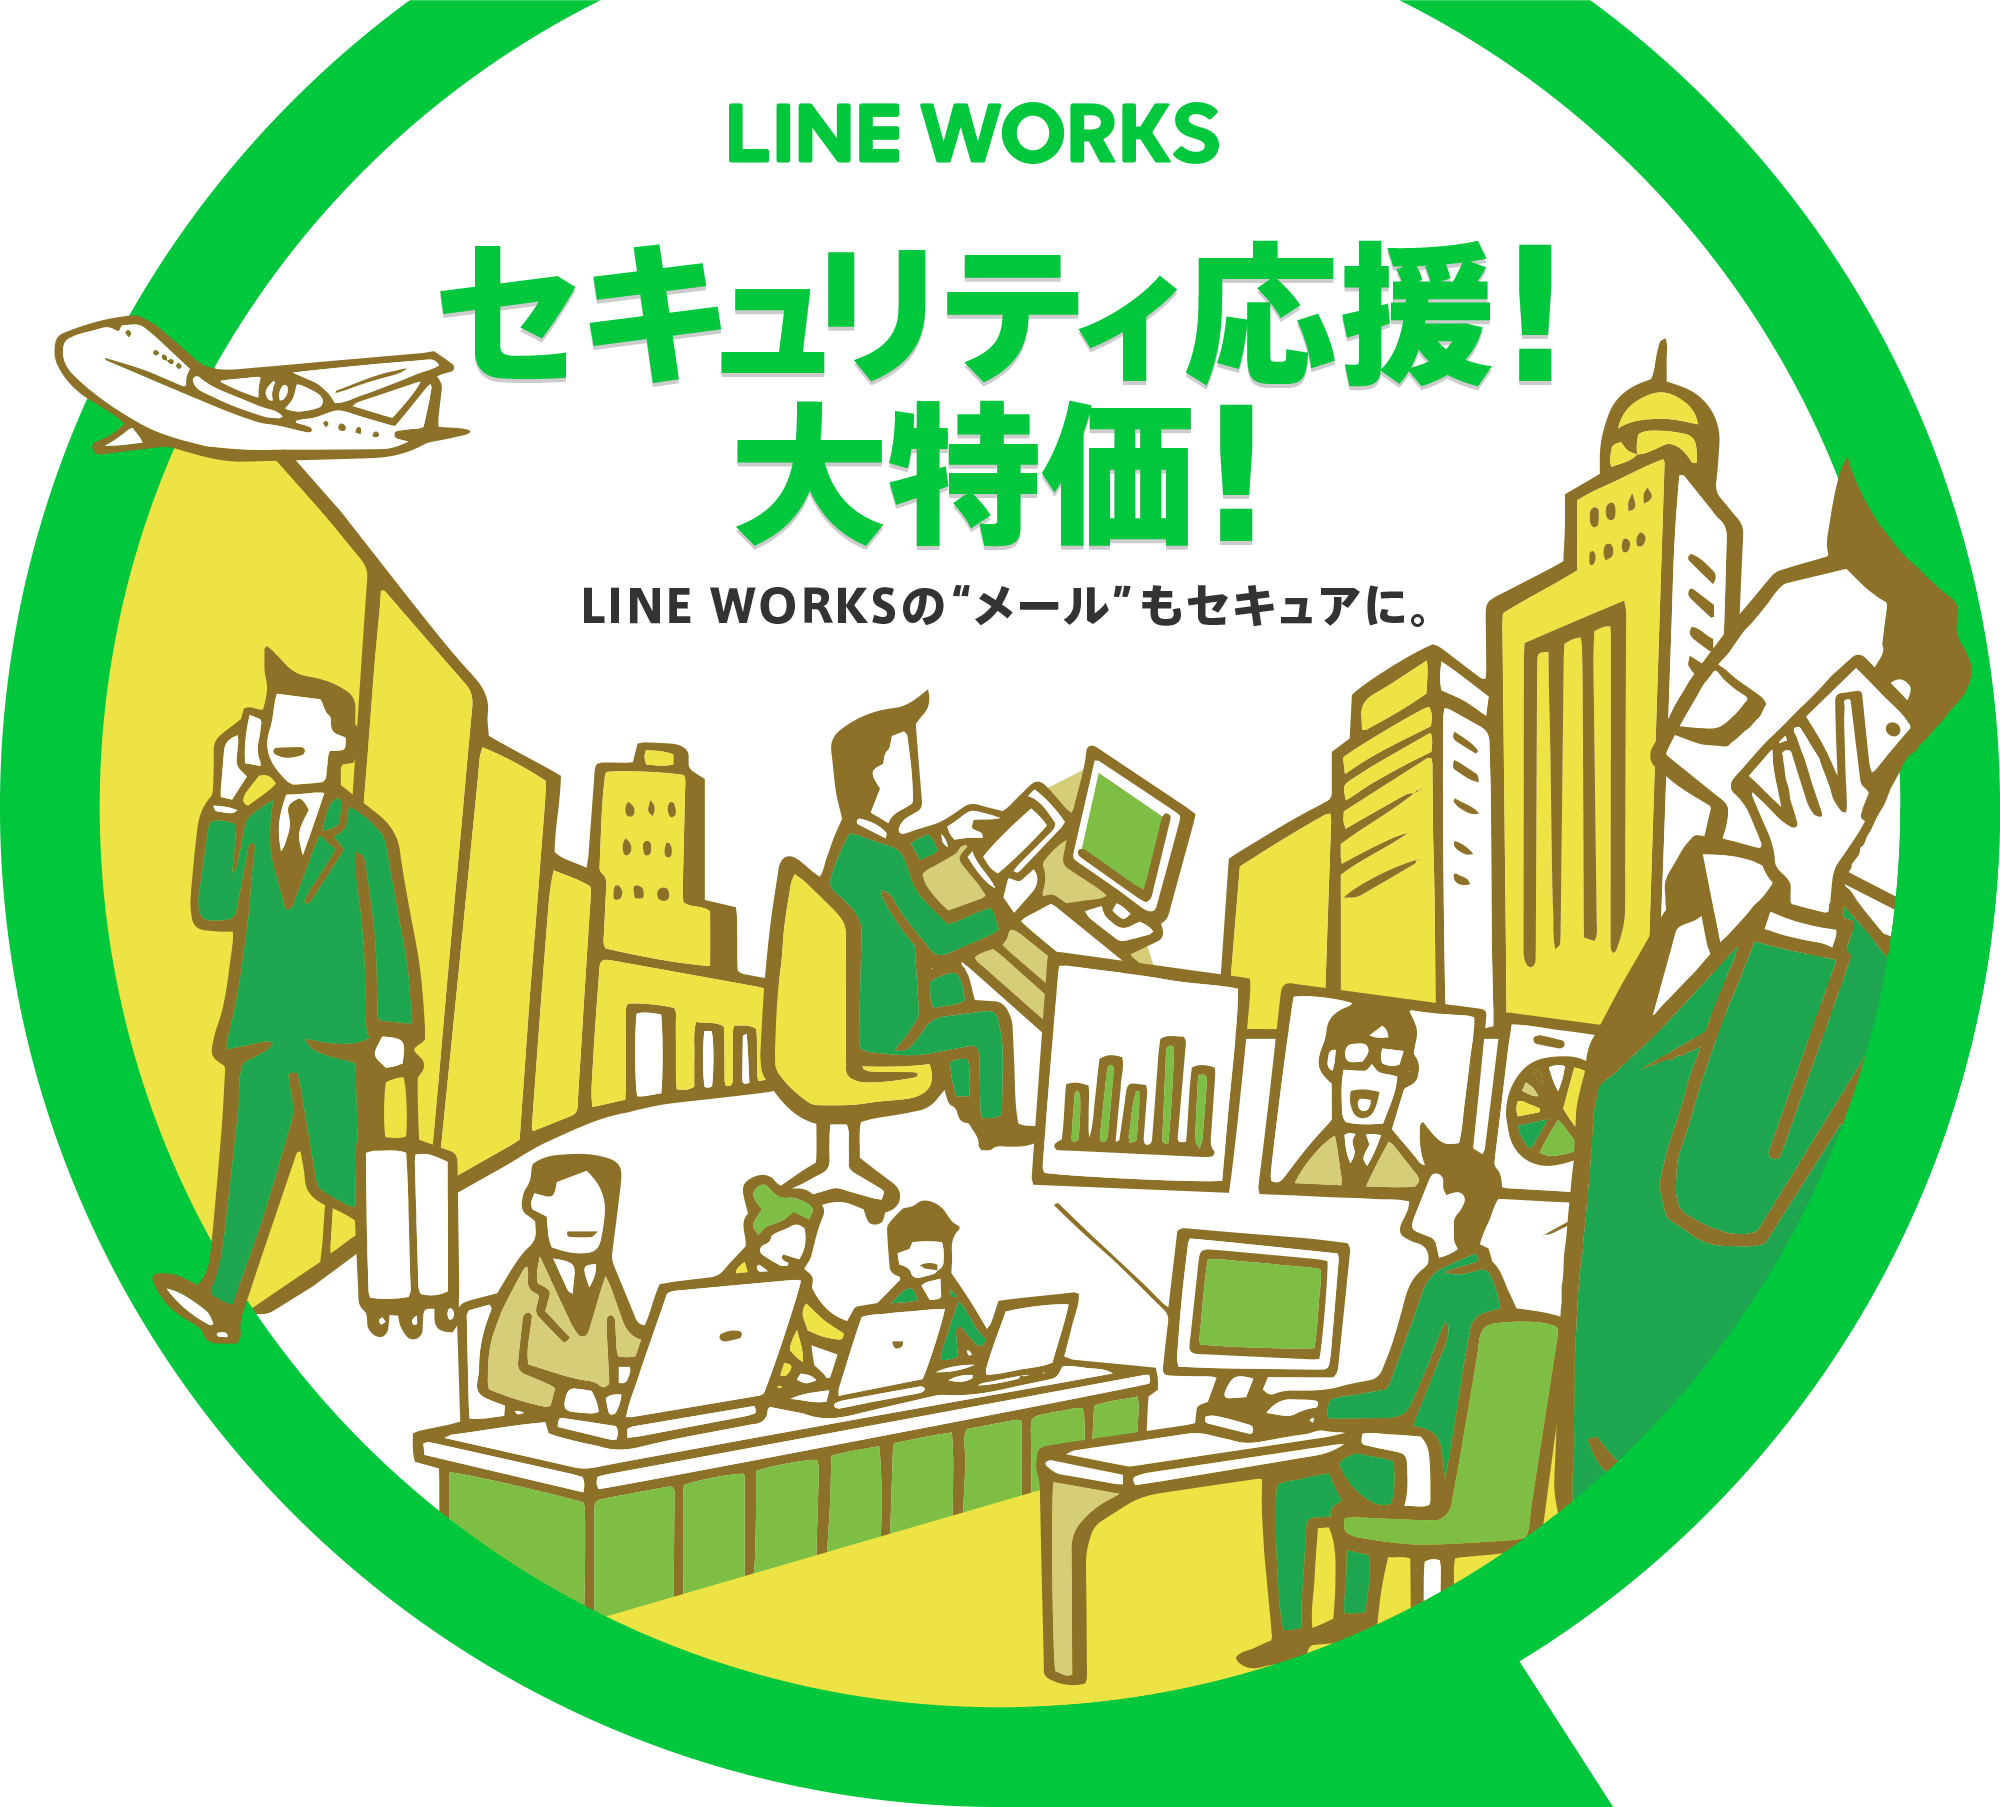 LINE WORKS セキュリティ応援!大特価!